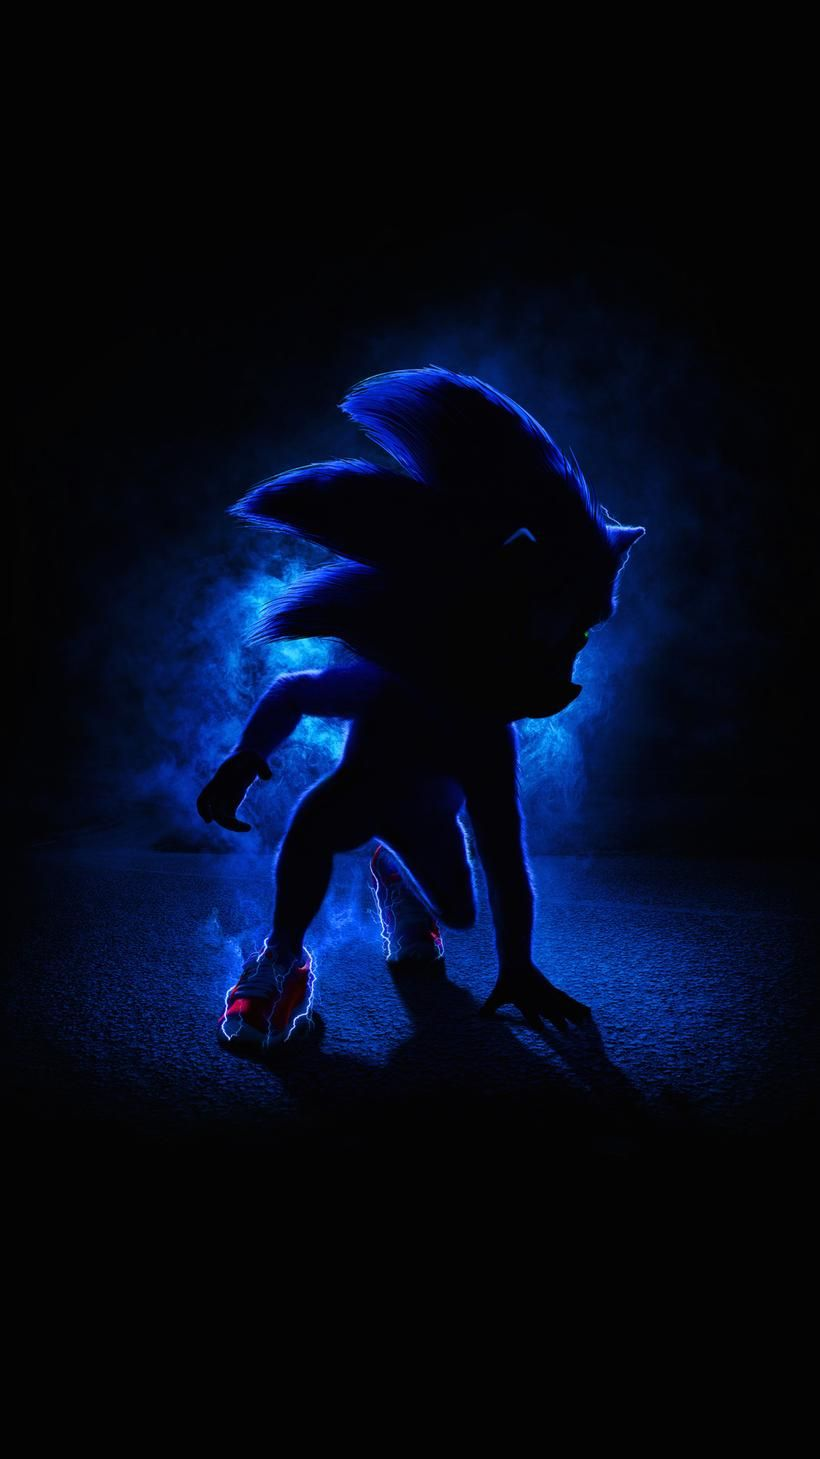 Sonic the Hedgehog (2020) Phone Wallpaper Fondos de